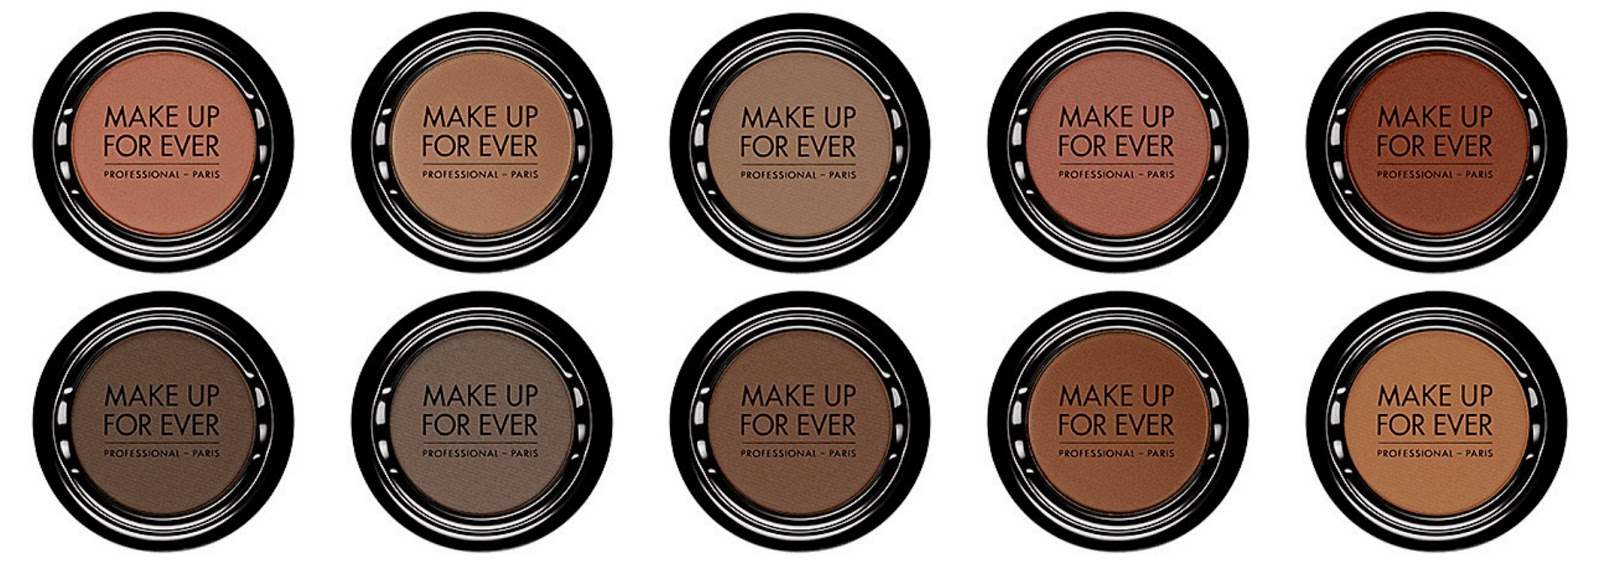 Make Up For Ever Artist Shadow Top from left: M546 Dark Purple Taupe; M-548 Pink Gray; M558 Dark Taupe; M600 Pink Brown; M608 Red Brown Bottom from left: M618 Espresso; M620 Gray Brown; M626 Neutral Brown; M-630 Sweet Chestnut; M636 Cappuccino